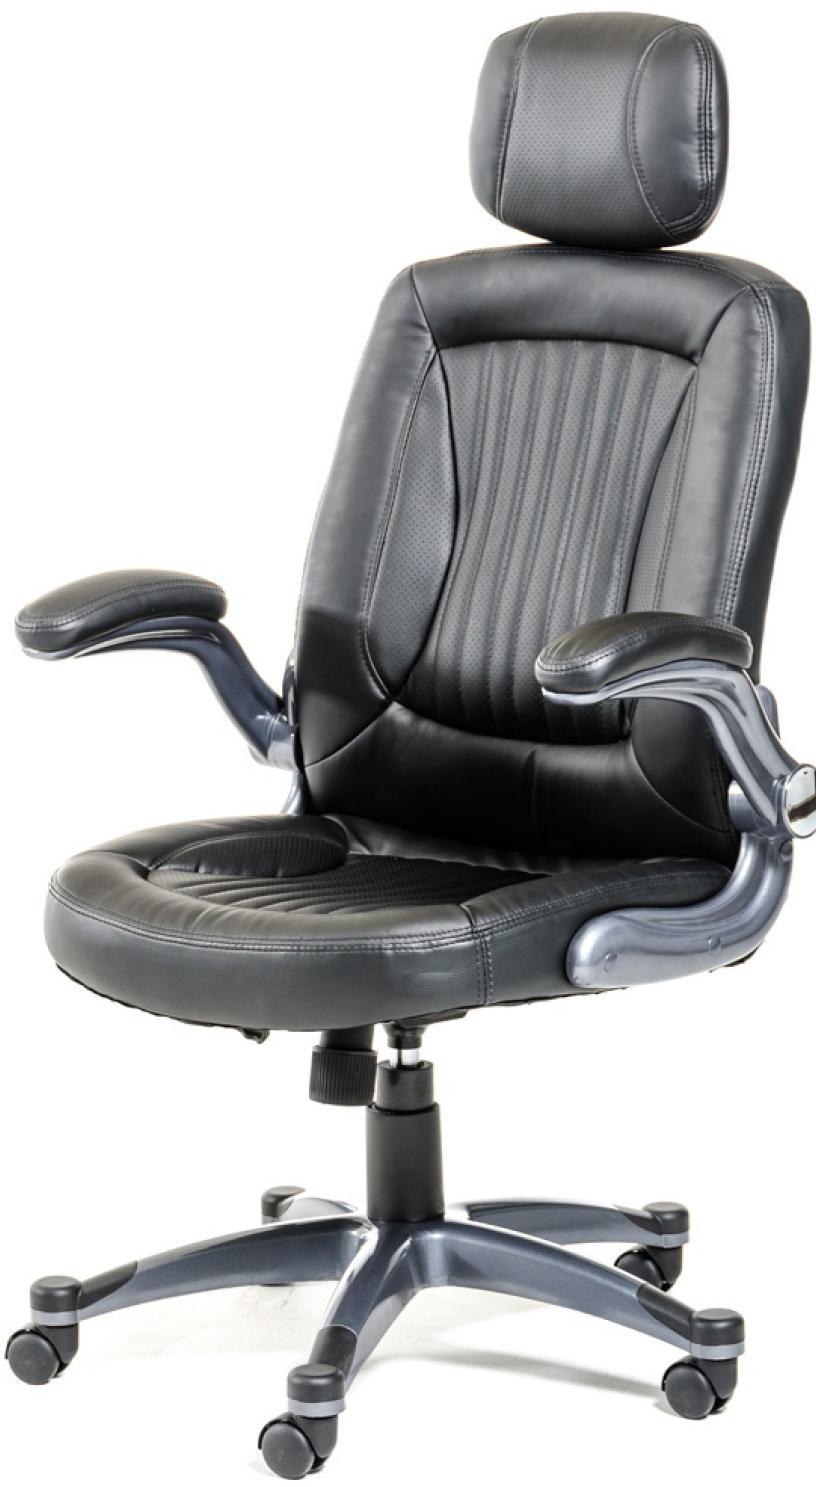 The Chief Executive Black Modern Office Chair is a new chair available at AdvancedInteriorDesigns.com